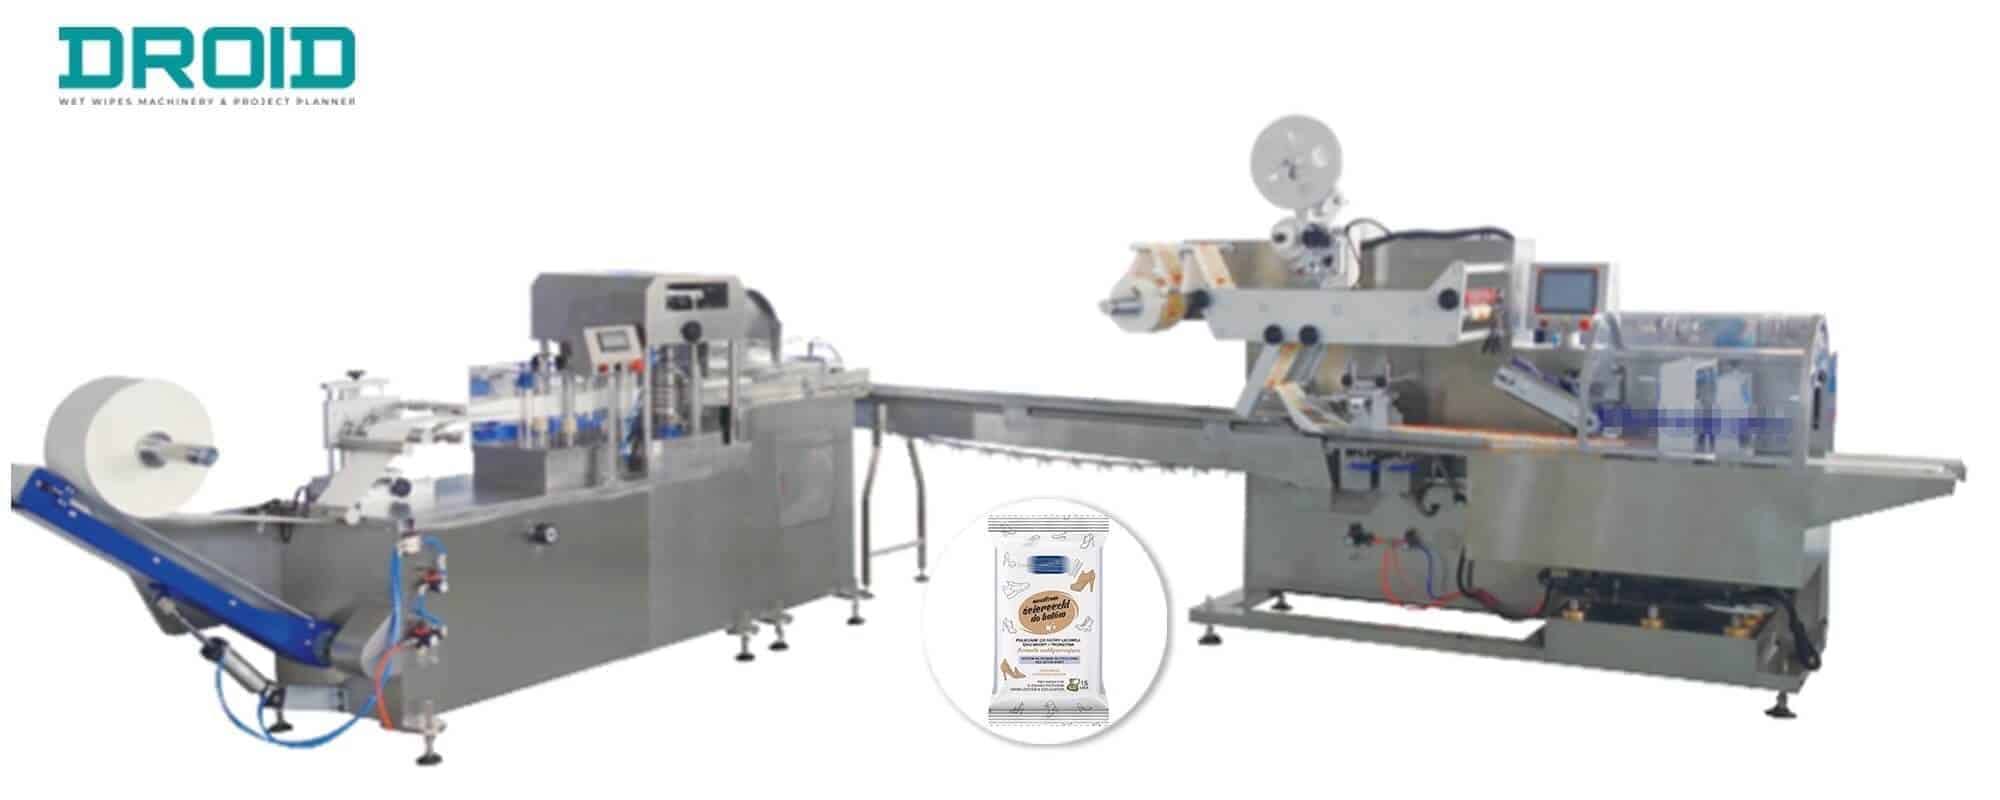 UT FL1UT WP cross fold wet wipes machine - Are you looking for Disinfectant Wet Wipes Machine?